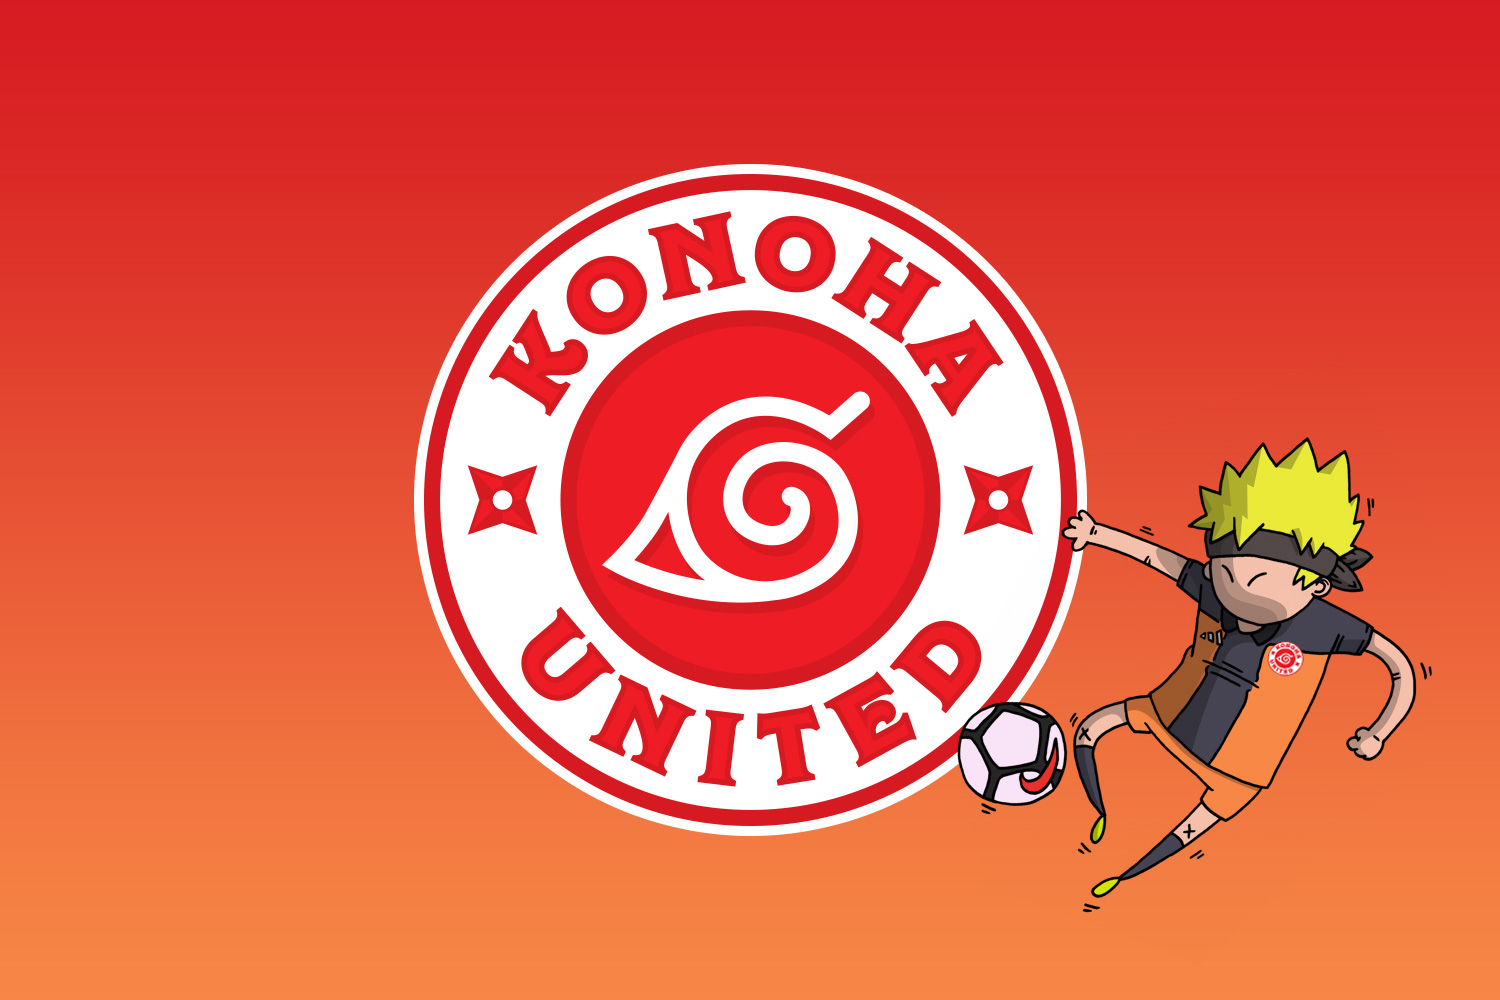 konoha-united-b